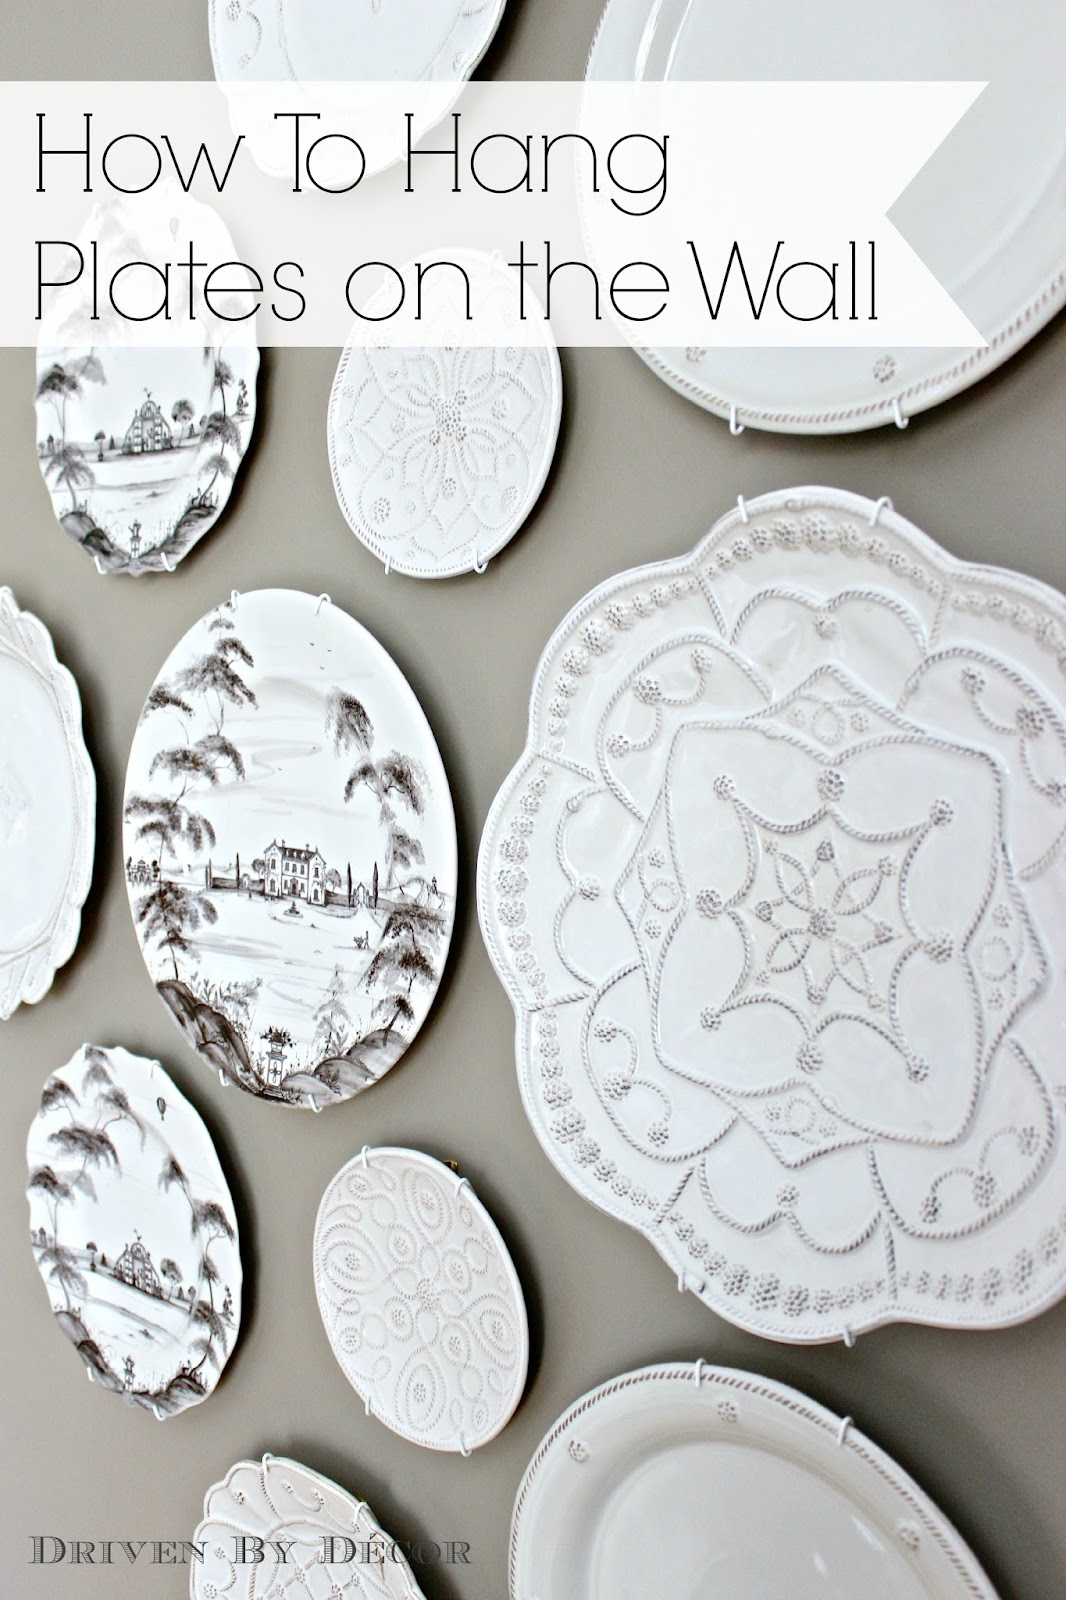 How To Hang Plates On The Wall The Best Hangers More Driven